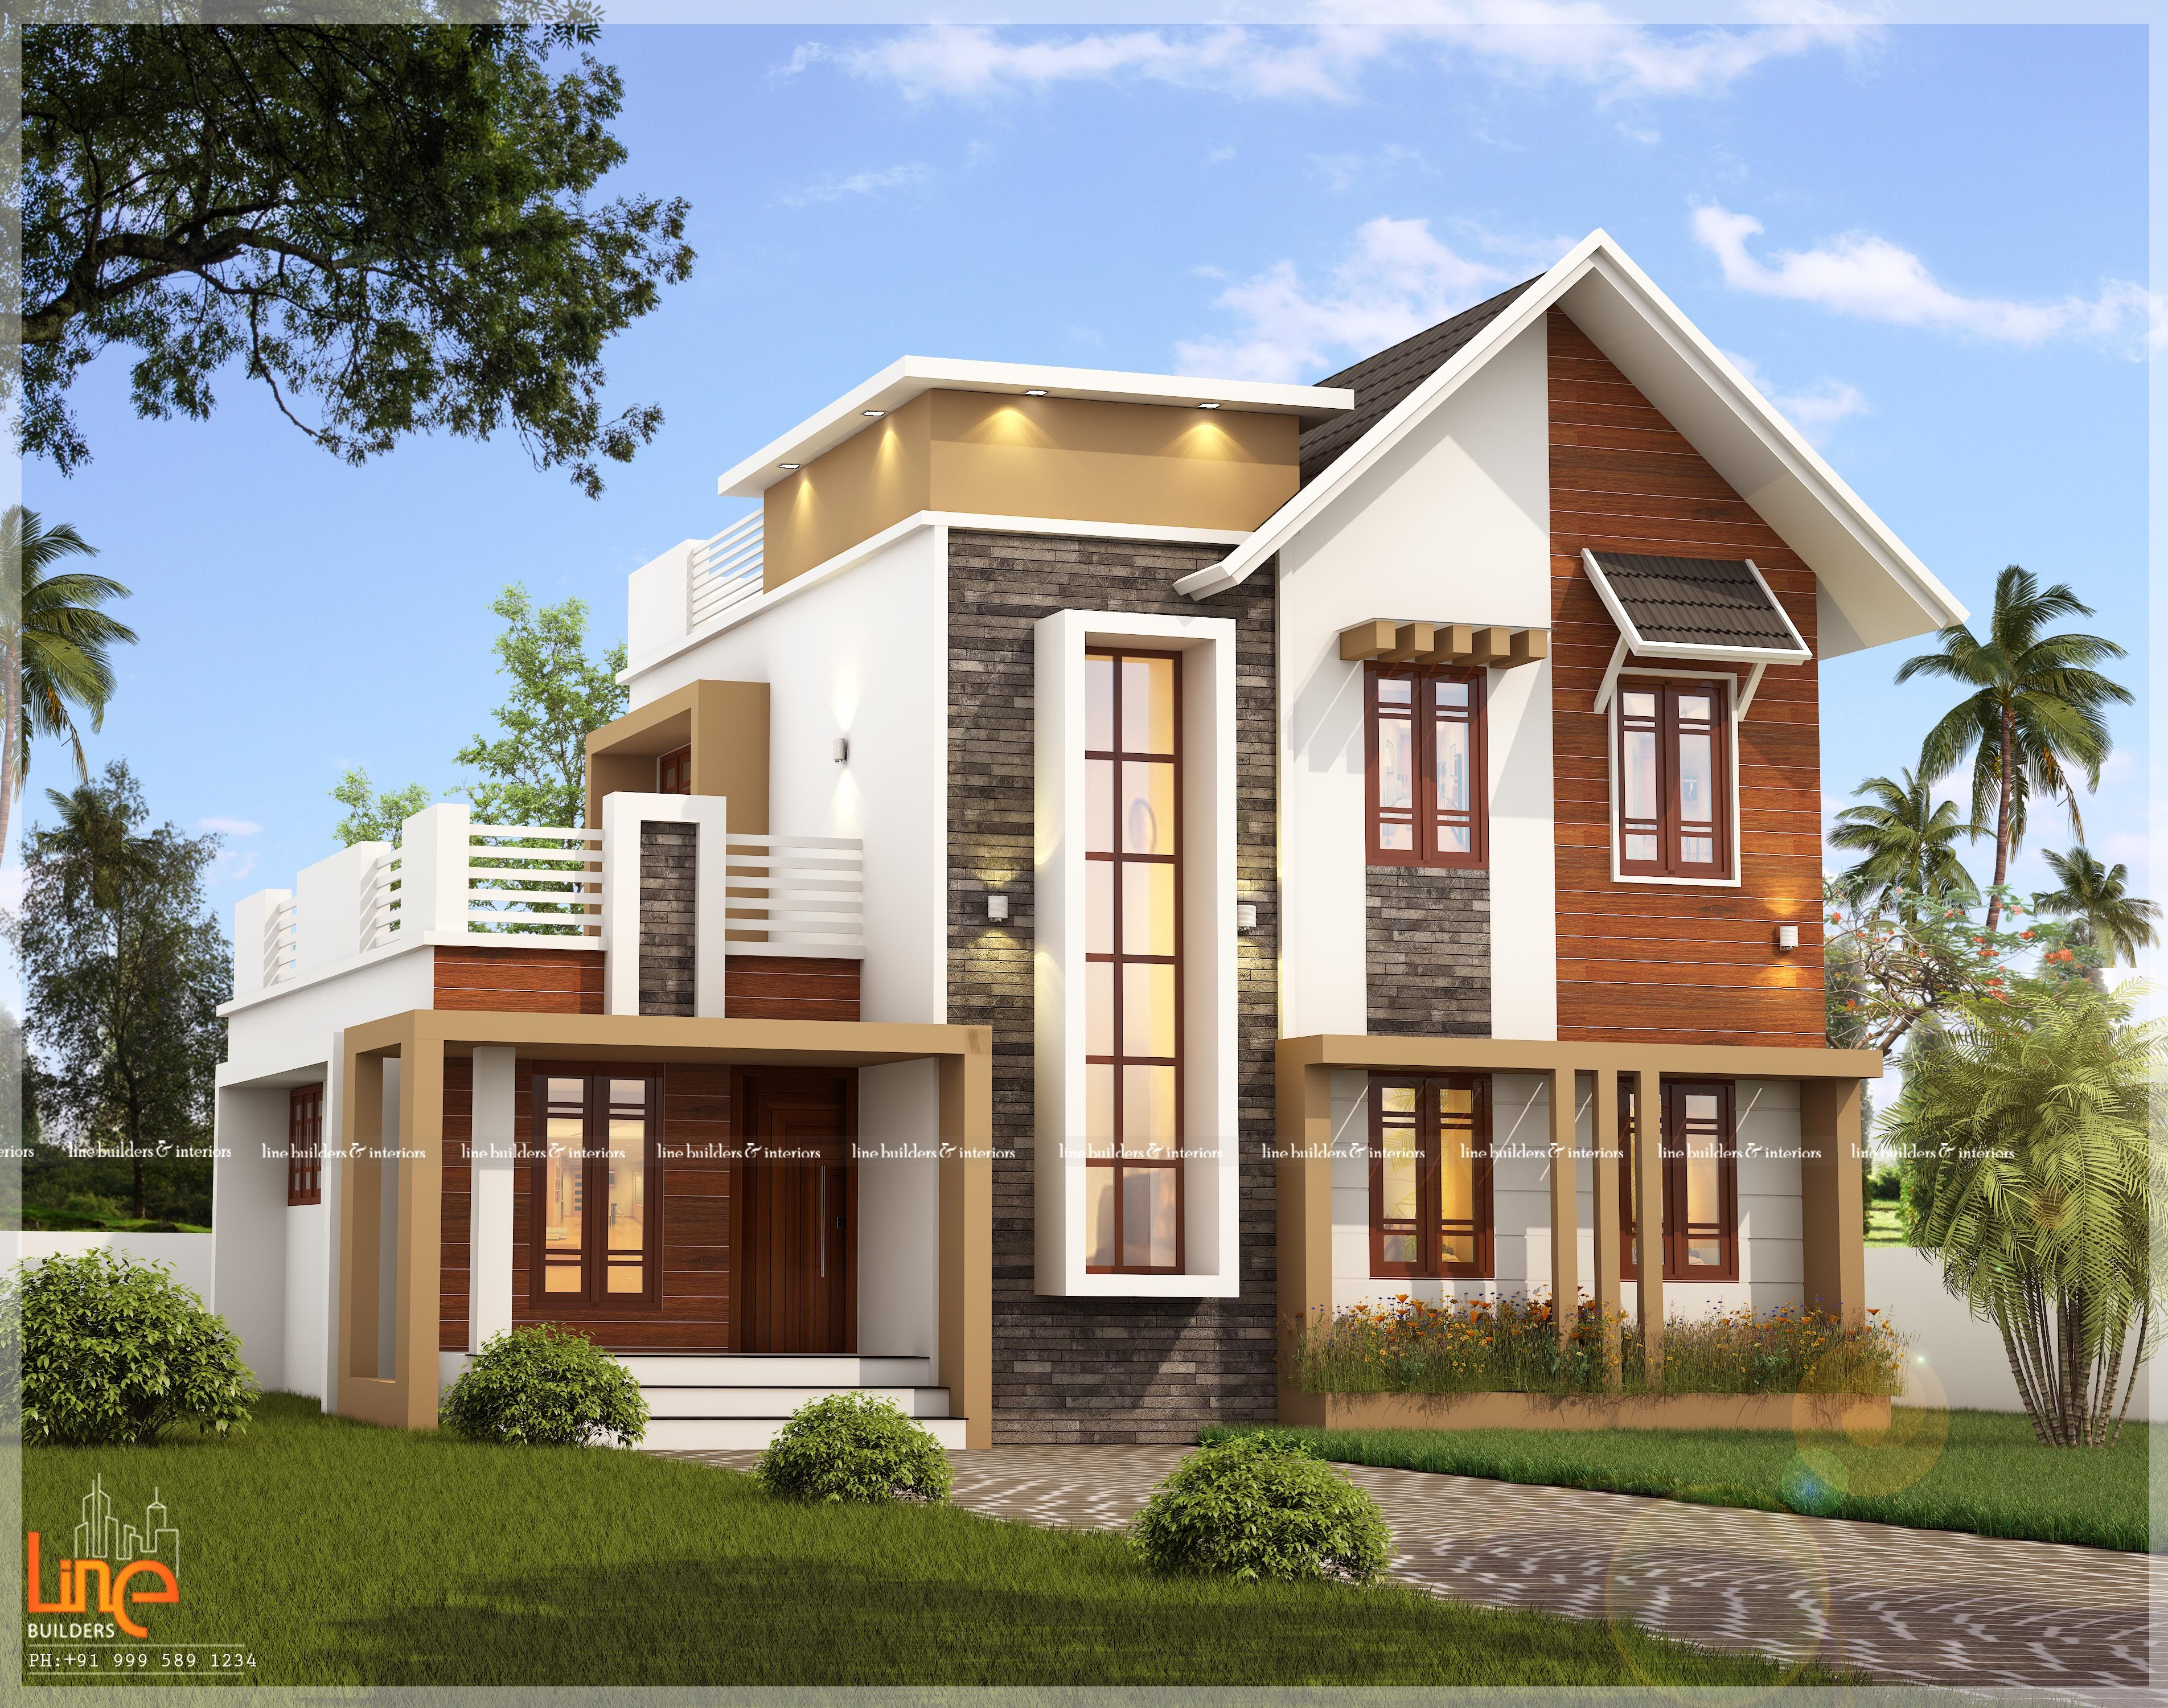 Looking For A Dream Home 31 Lacks Beautifull Budget Homes 1742 Sqft House With 4 Bed Kerala House Design Latest House Designs Model House Plan